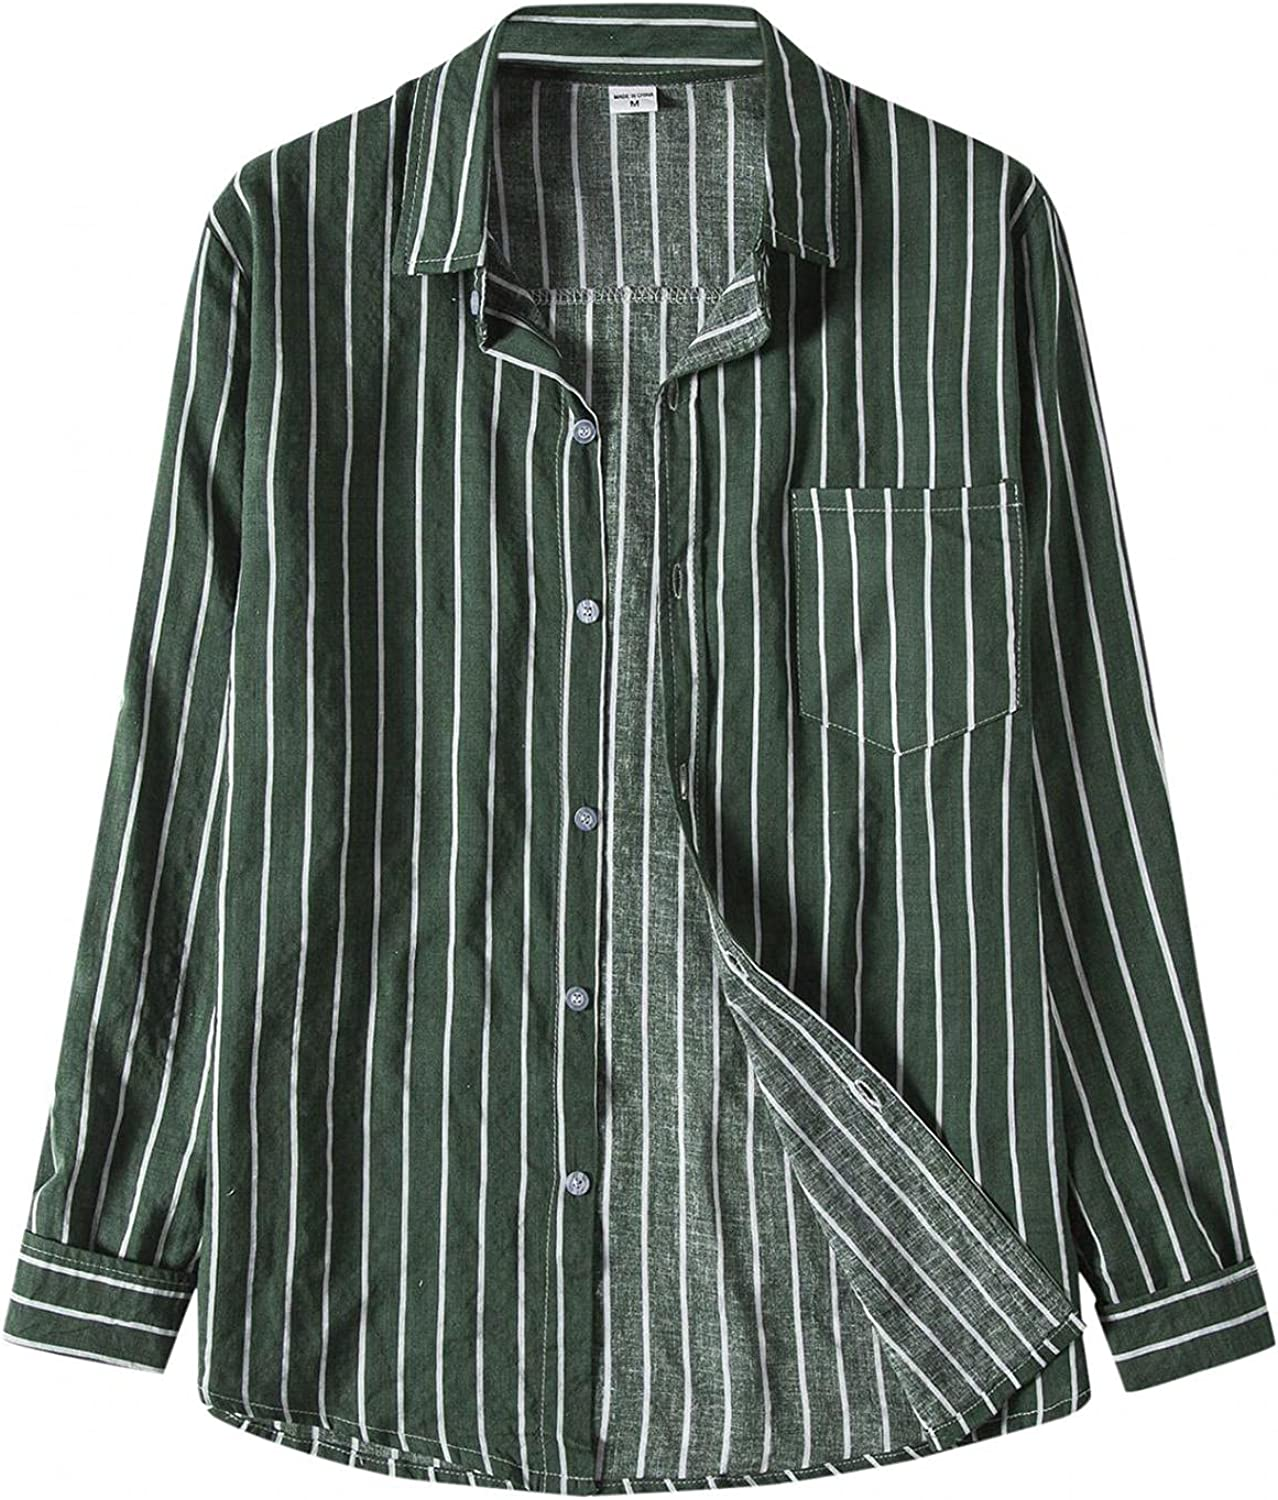 Huangse Mens Loose fit Casual Linen Shirt for Men Button Down Contrast Color Striped Shirt with Pockets Turndown Neck Tops